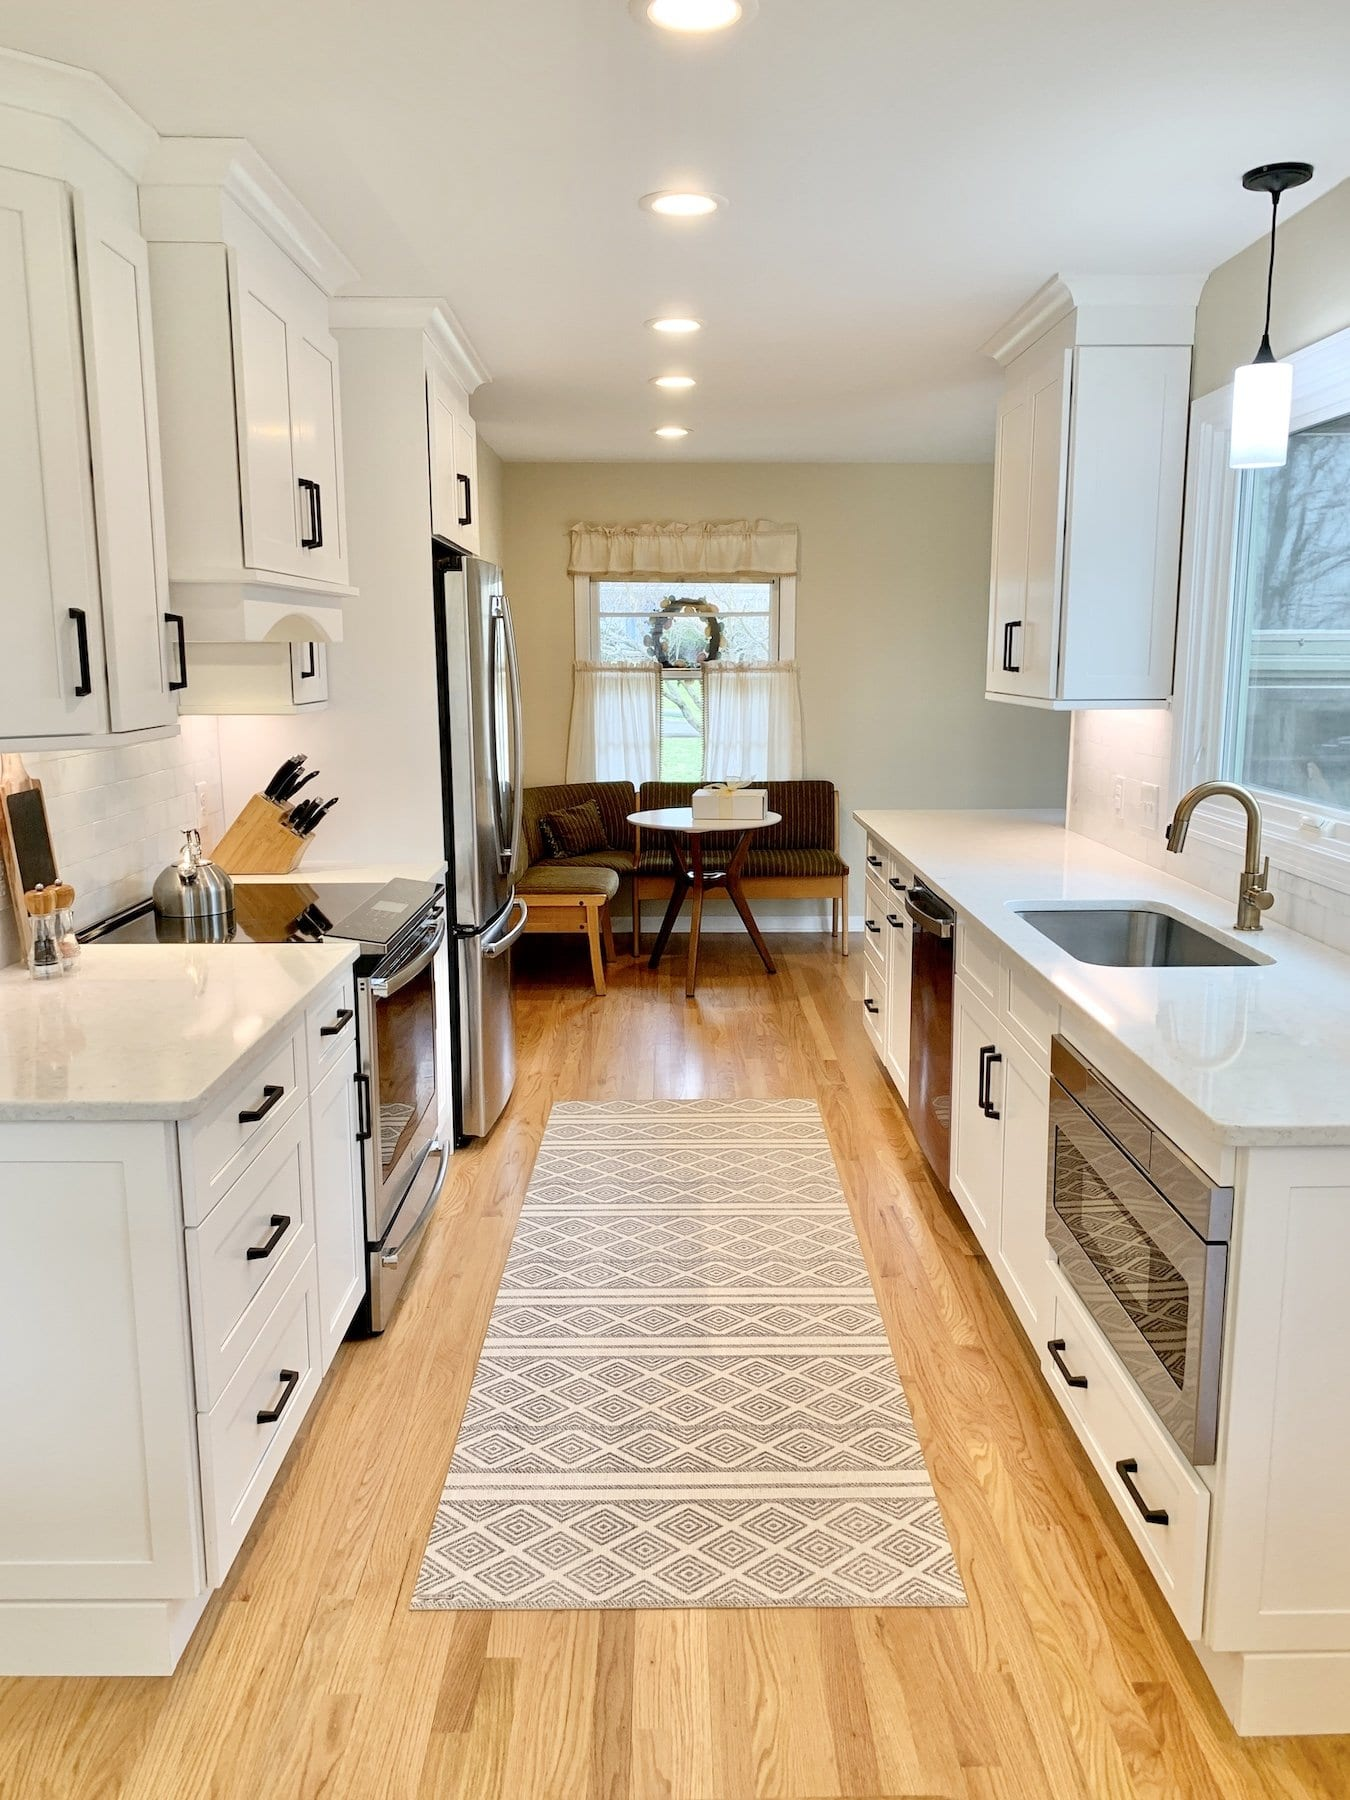 Cabinetry Cost And Pricing Guide Dean Cabinetry